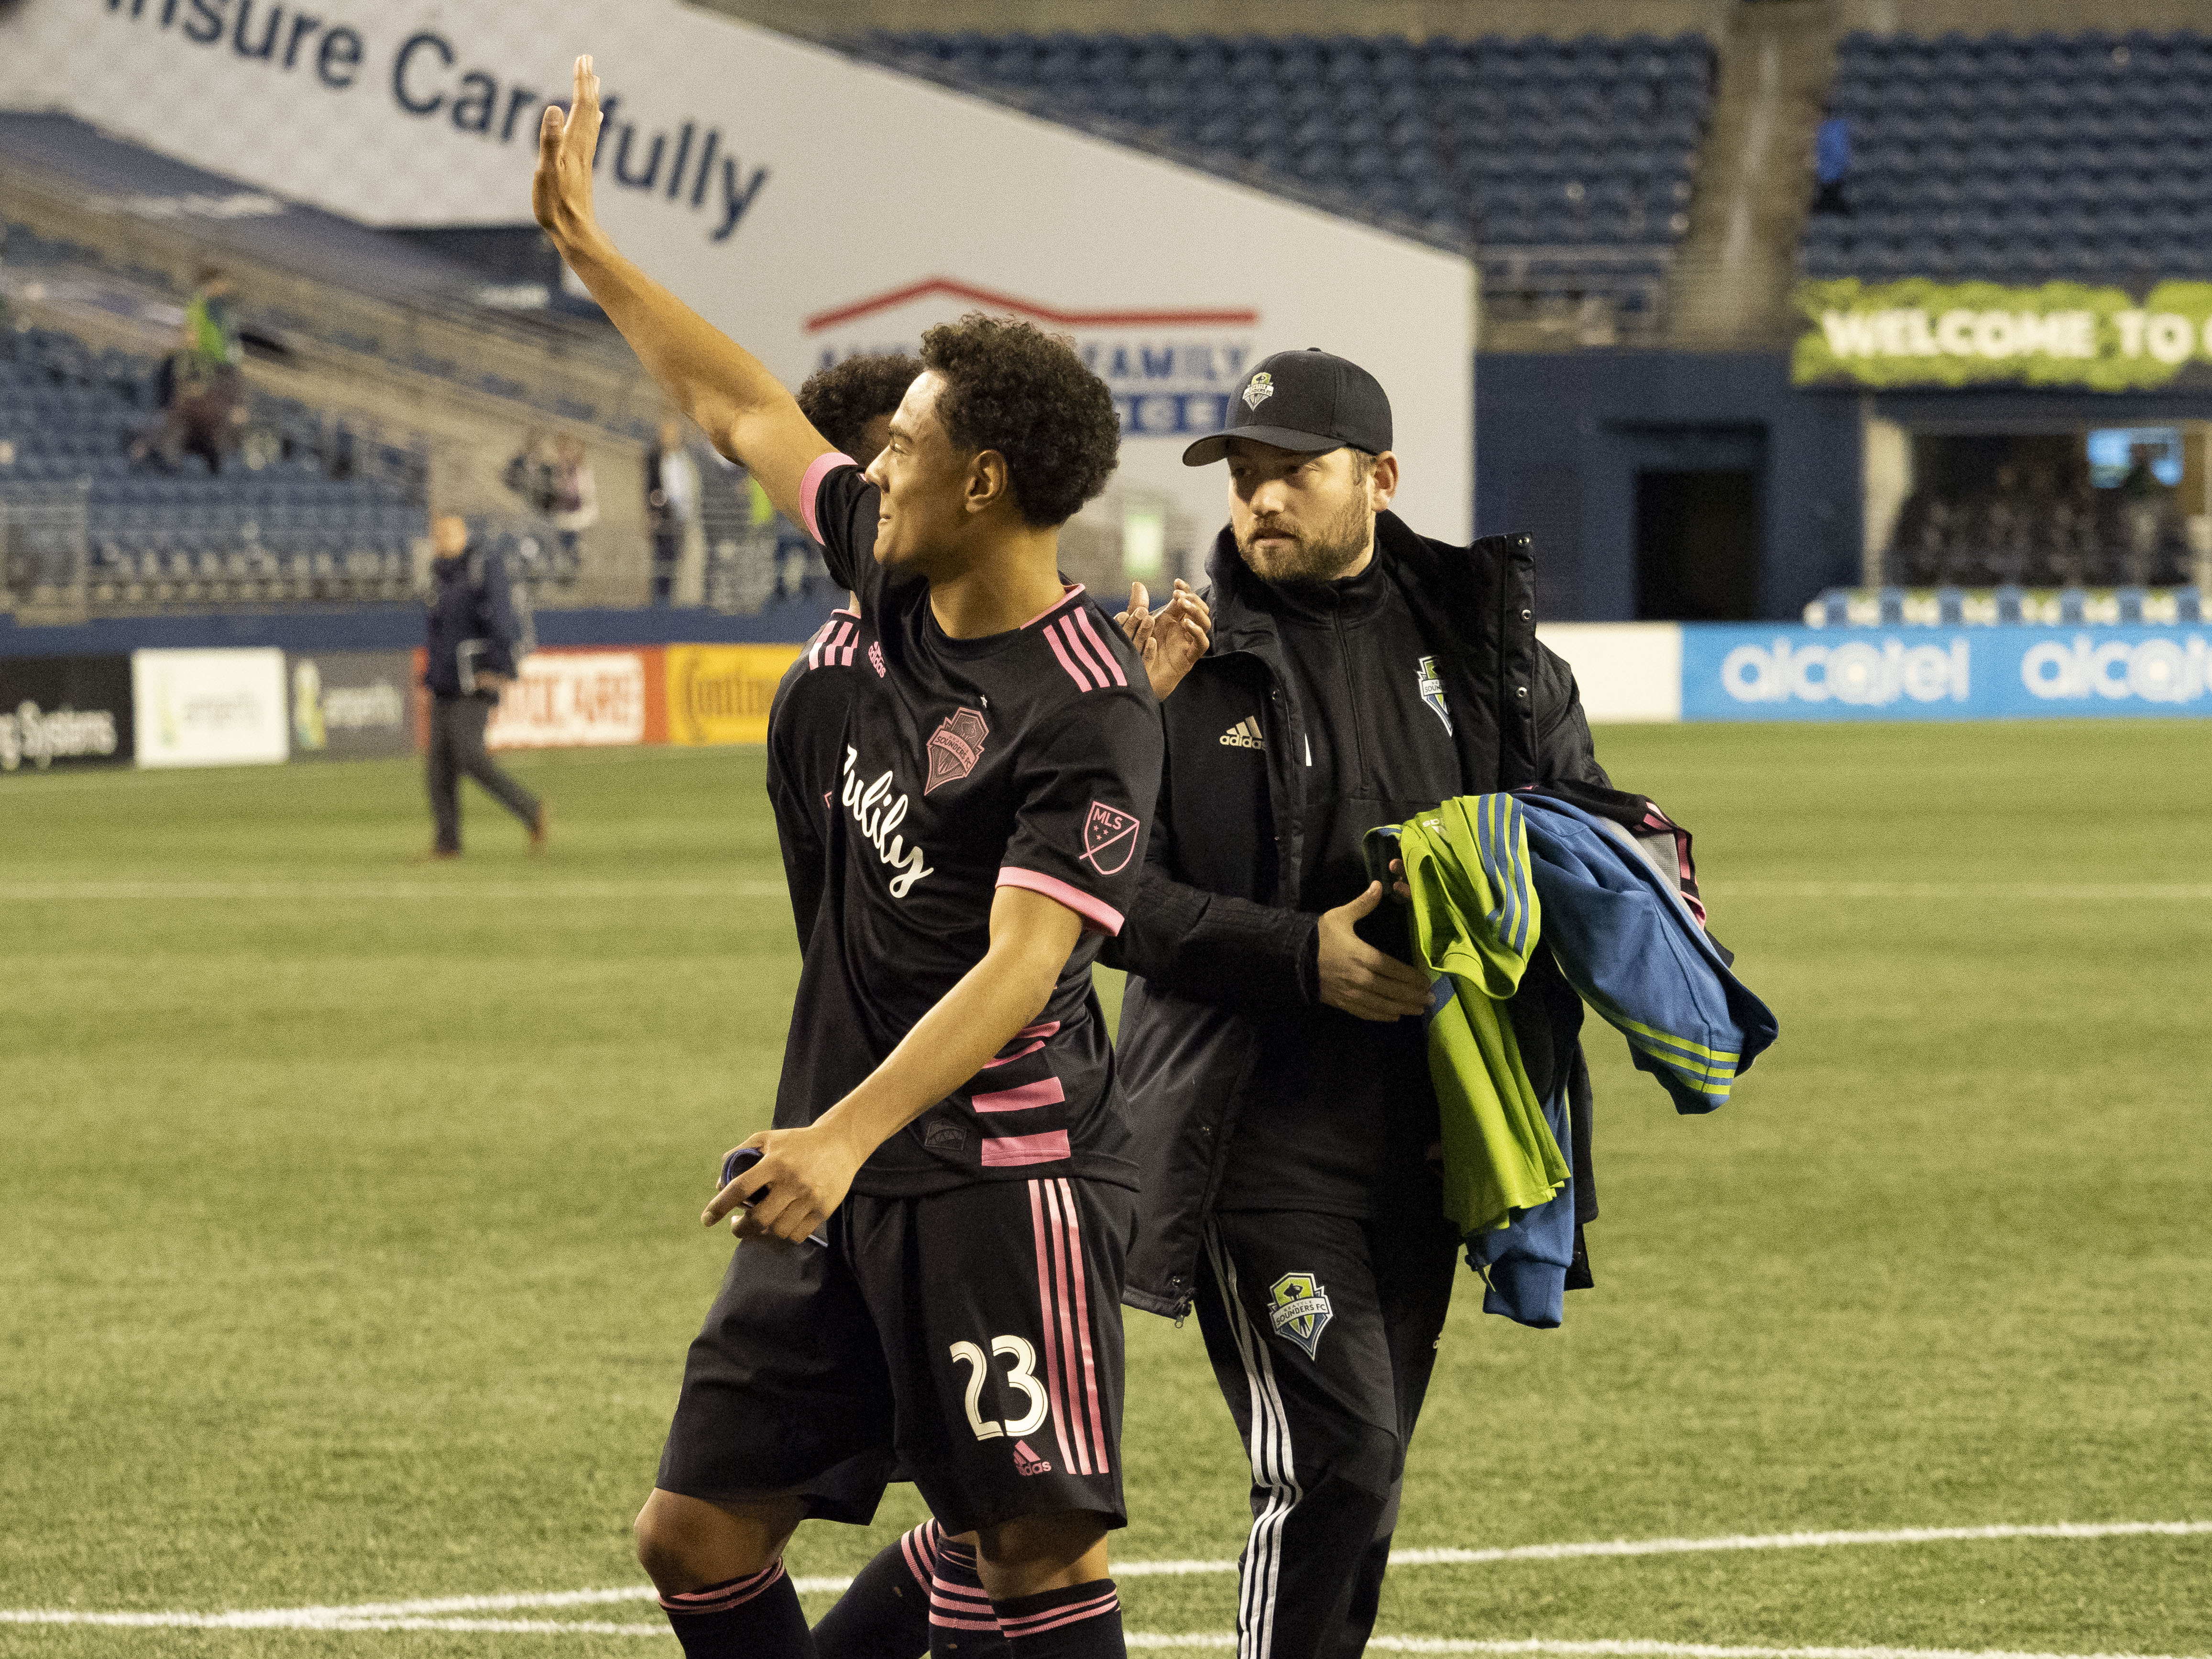 SOCCER: APR 24 MLS - San Jose Earthquakes at Seattle Sounders FC